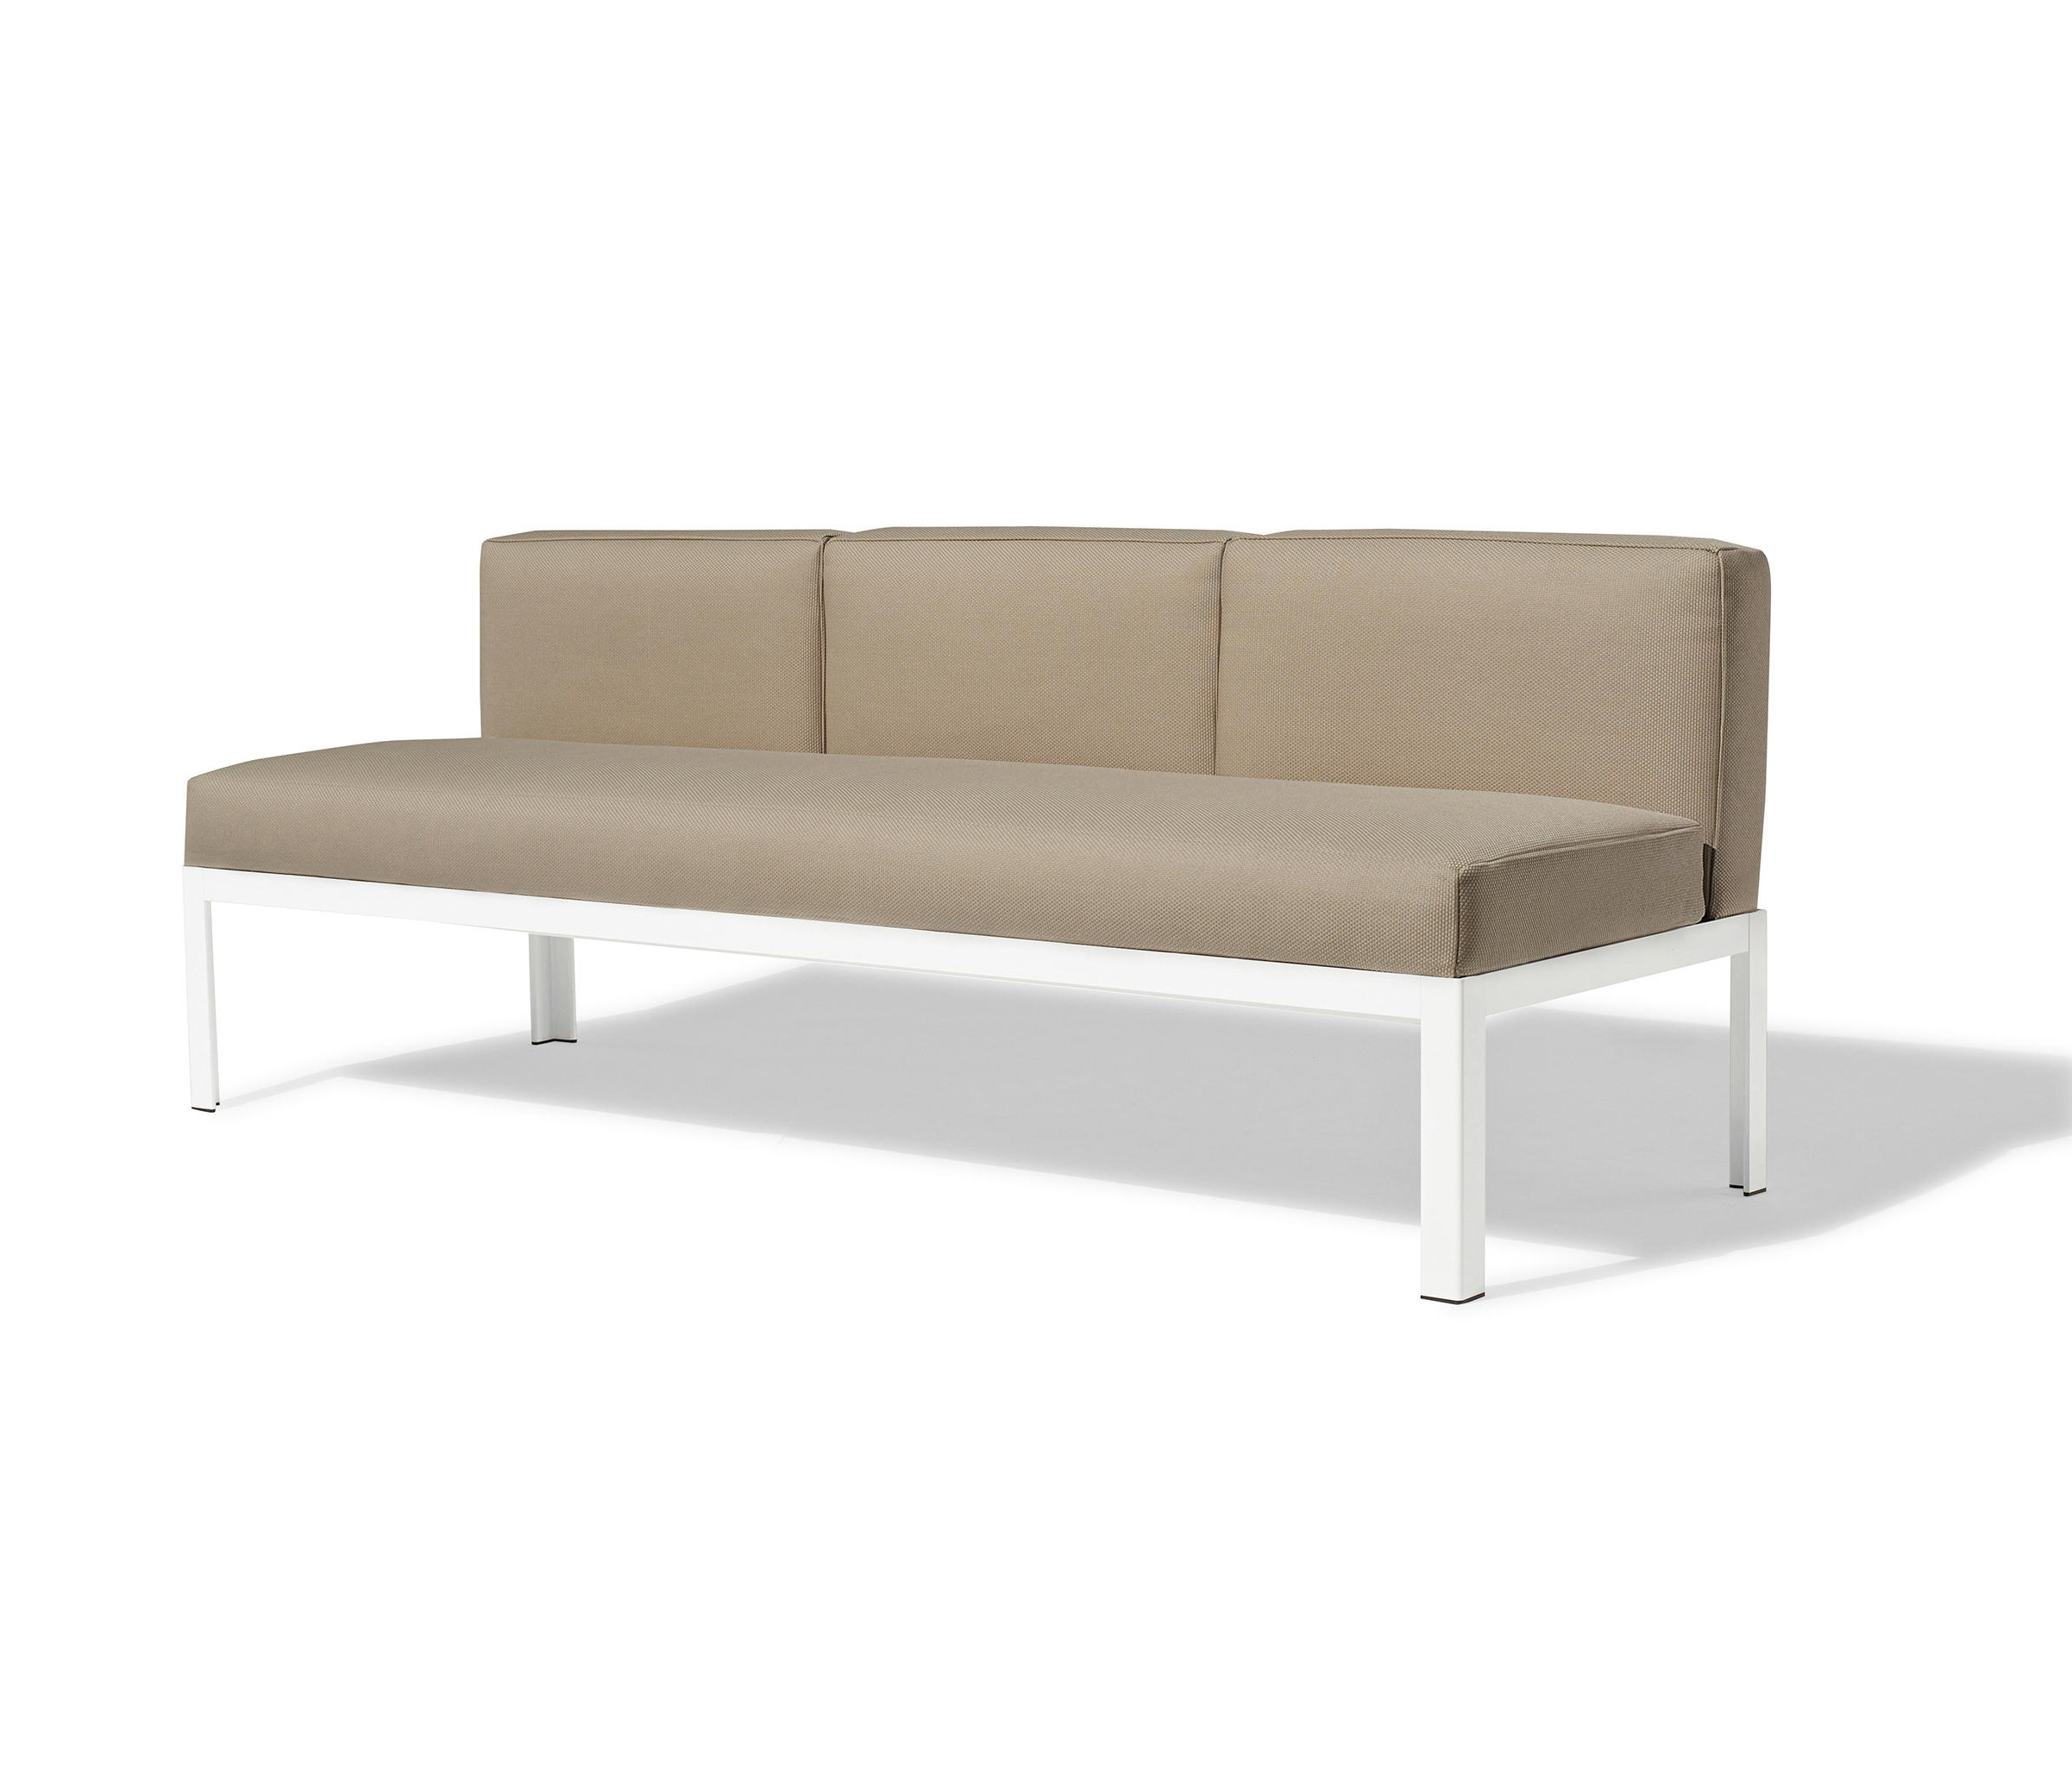 Architonic Regarding 4 Seat Sofas (View 3 of 15)